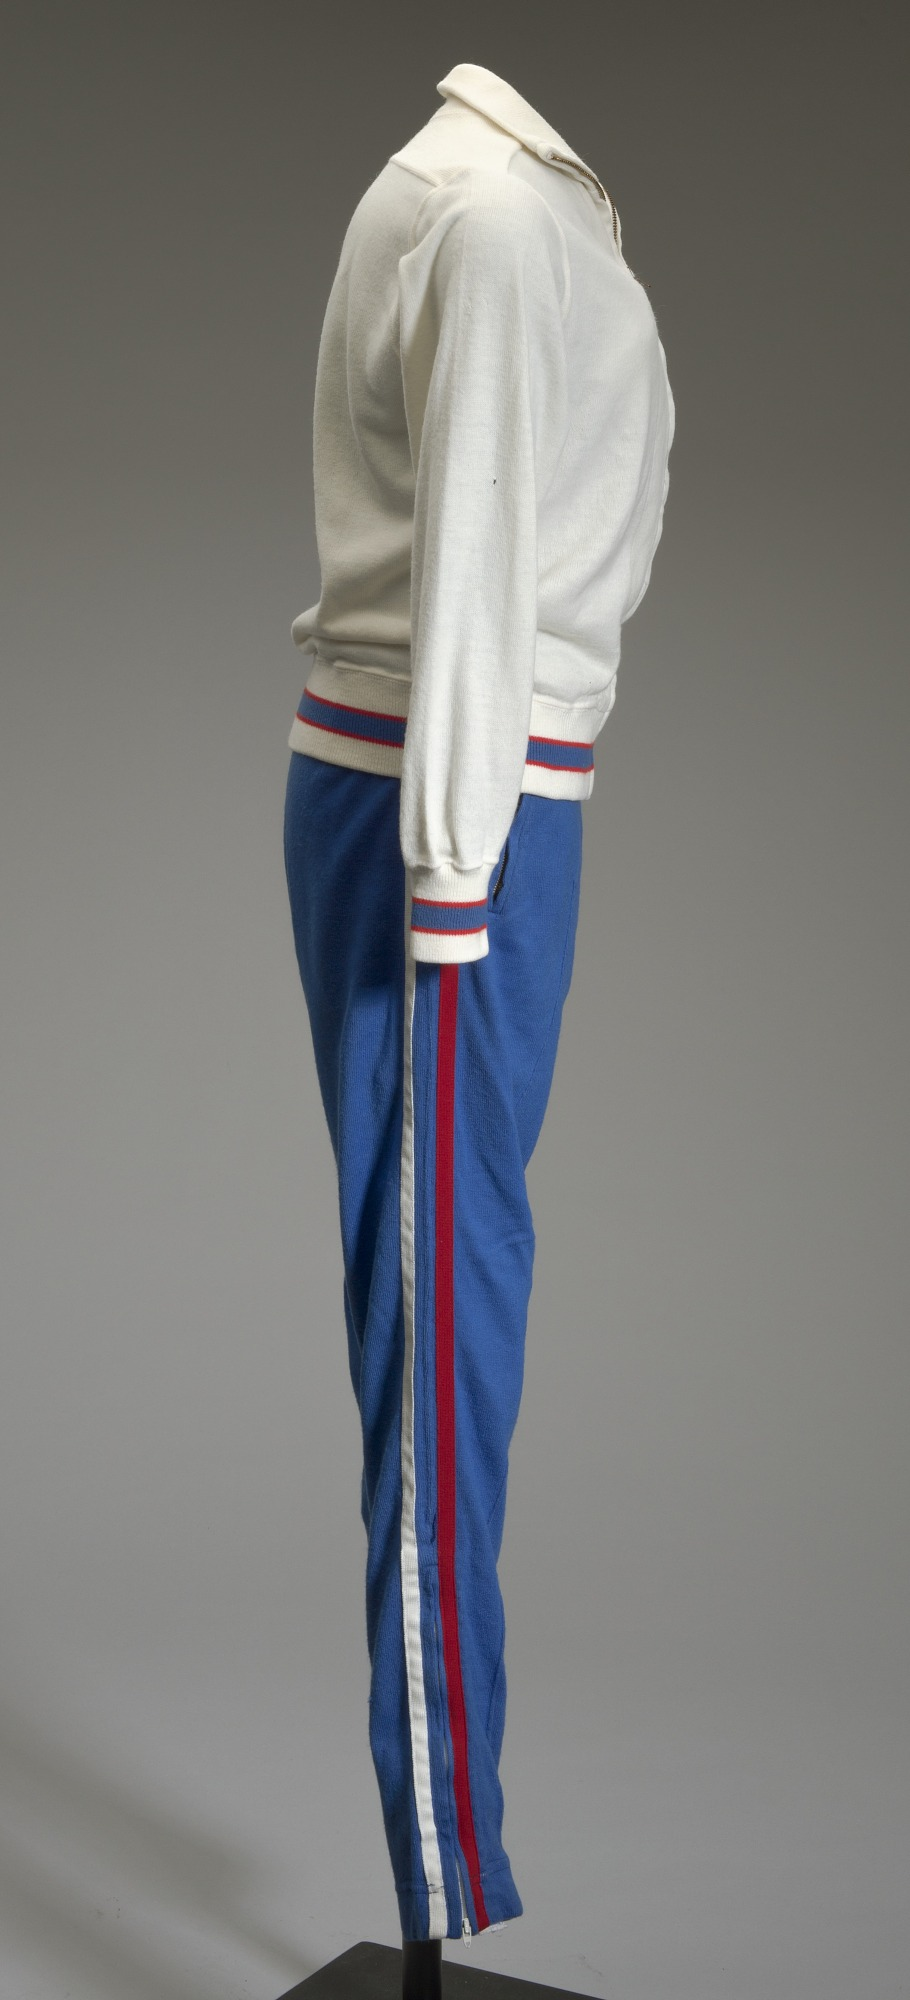 Track suit for the TSU Tigerbelles worn by Chandra Cheeseborough